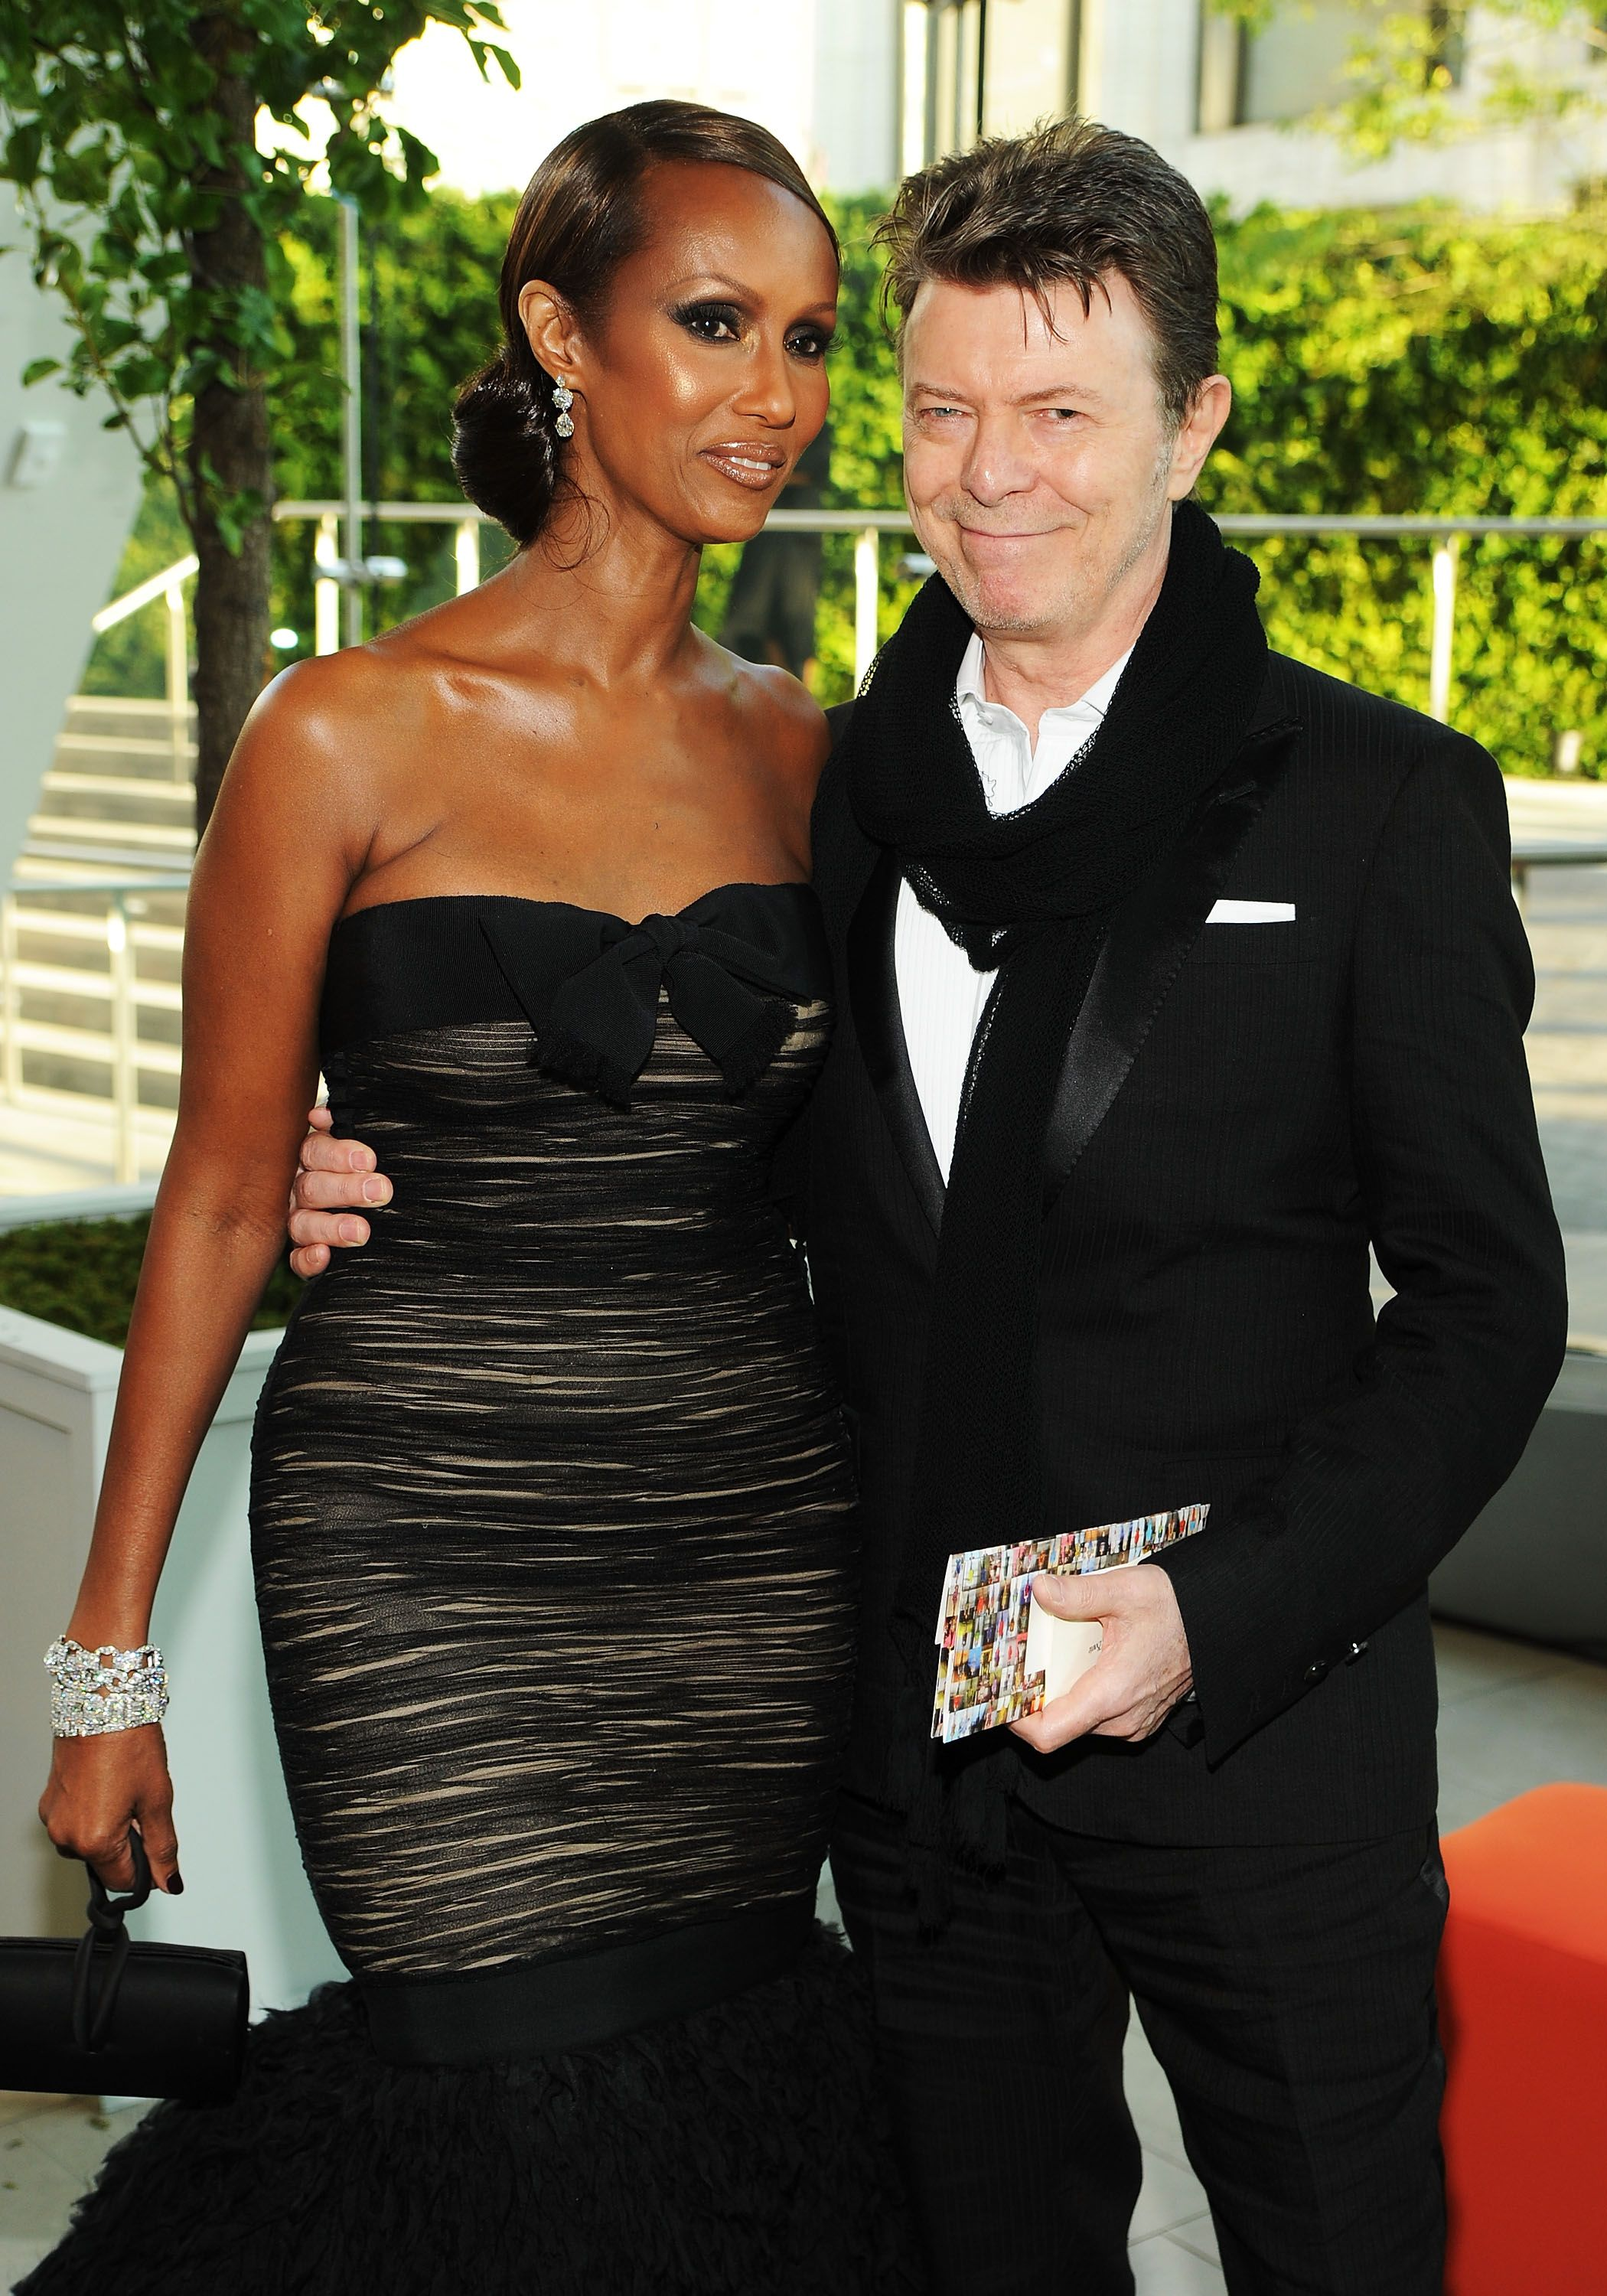 Iman and David Bowie at the 2010 CFDA Fashion Awards in 2010 in New York City | Source: Getty Images